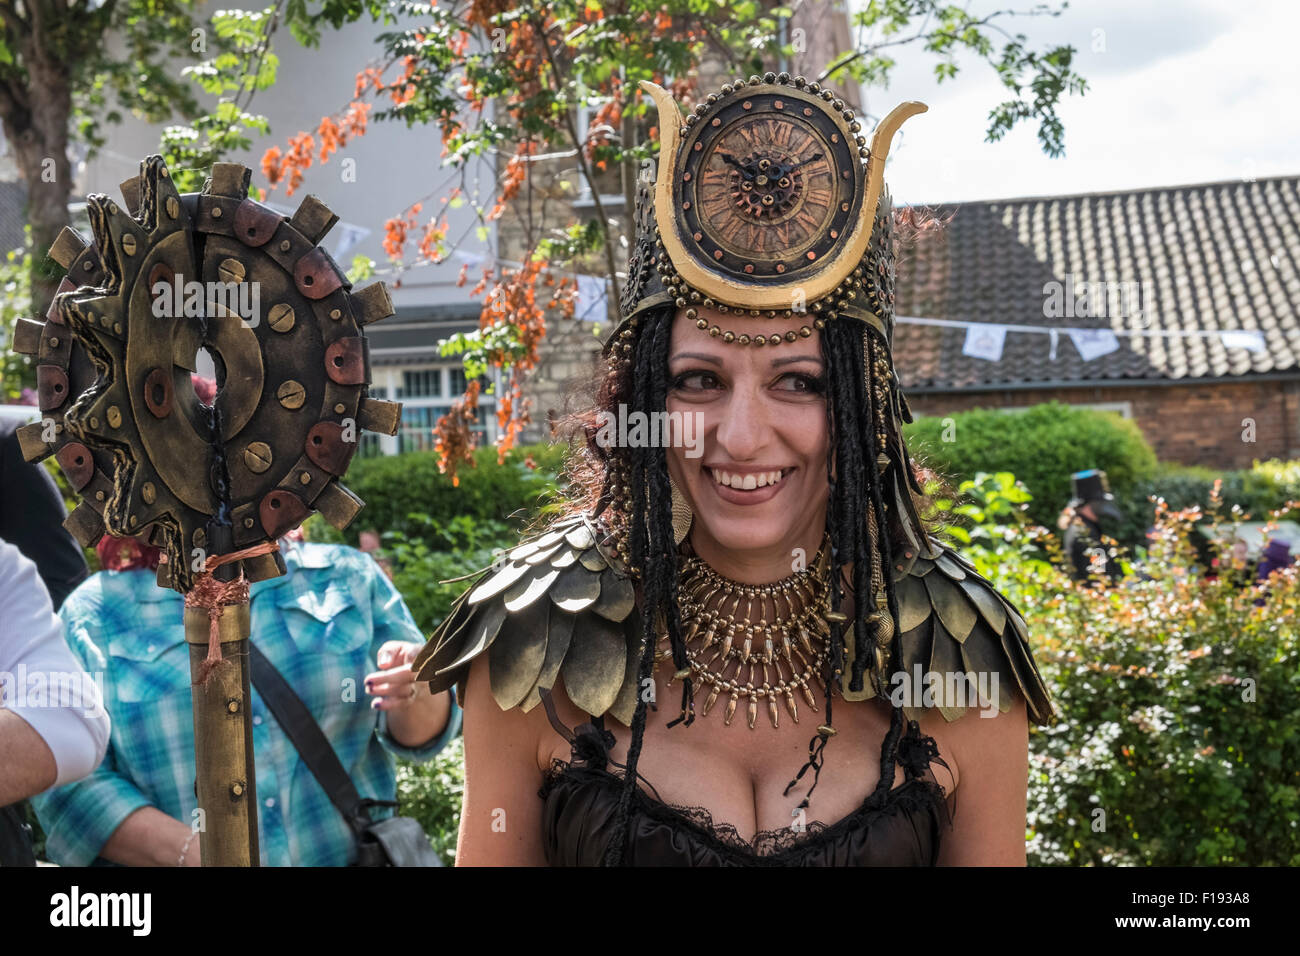 Woman Costume Crown Immagini   Woman Costume Crown Fotos Stock - Alamy a0b766717d7d